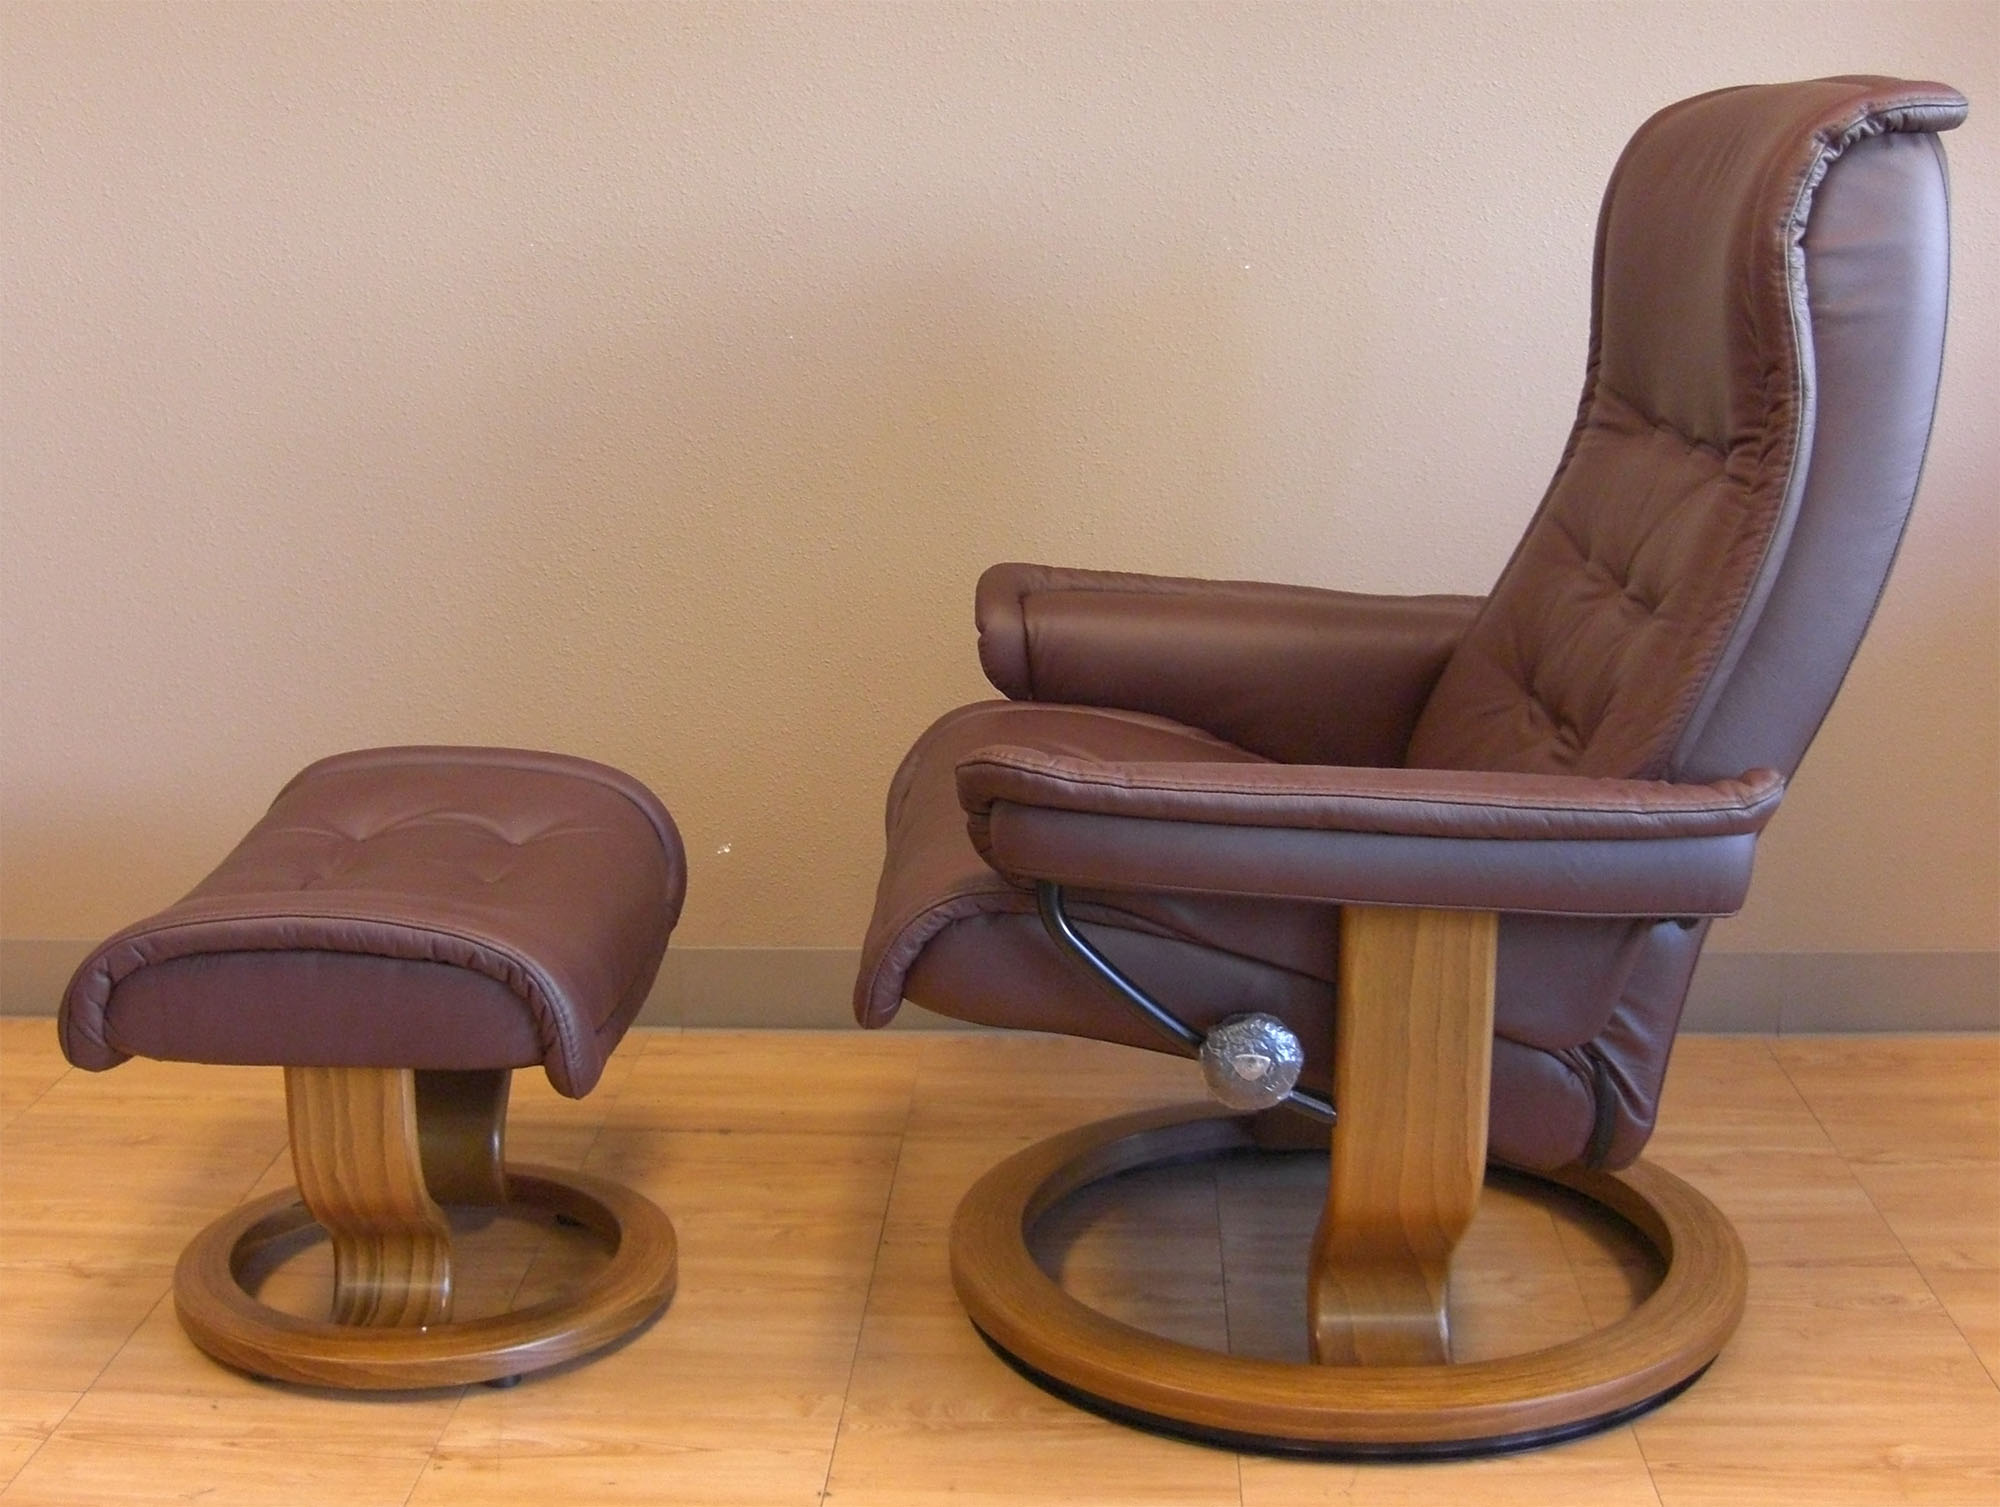 Stressless Paloma Coffee 09433 Leather Color Recliner Chair and Ottoman from Ekornes